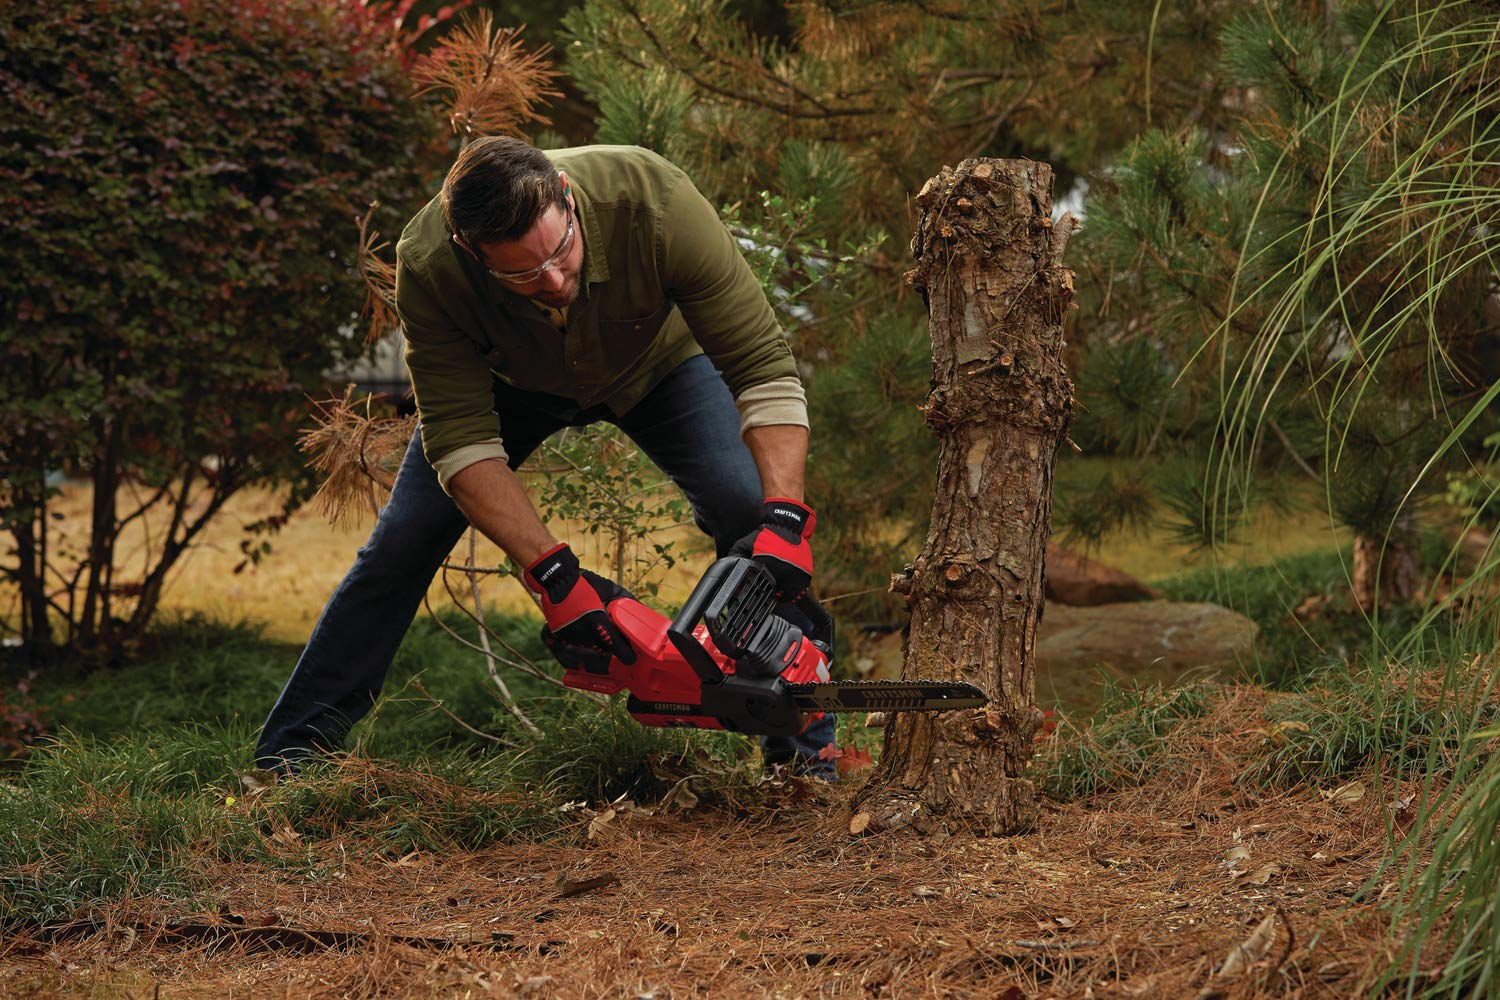 Craftsman CMCCS660E1 Chainsaws product image 12